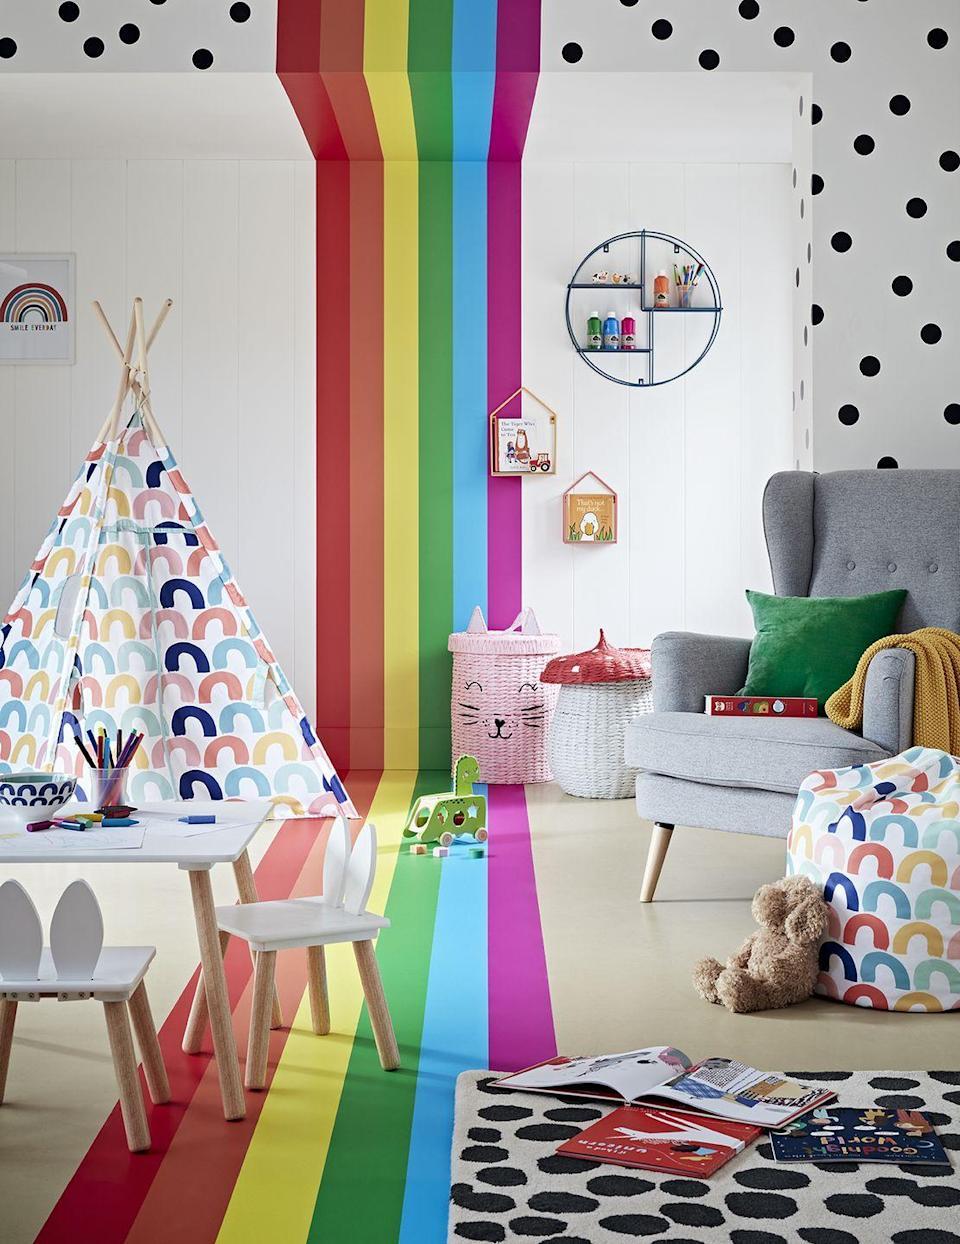 """<p>Ideal for a little girls' room, bold and bright stripes reach from the floor to ceiling, juxtaposed with black polka dots. Accessorise with bold prints and plains and look out for rattan storage baskets – they're a fab option and hard-wearing.</p><p>Pictured: From the Kids Collection, <a href=""""https://www.argos.co.uk/browse/home-and-furniture/kids-room/c:29371/"""" rel=""""nofollow noopener"""" target=""""_blank"""" data-ylk=""""slk:Argos HOME"""" class=""""link rapid-noclick-resp"""">Argos HOME</a></p>"""